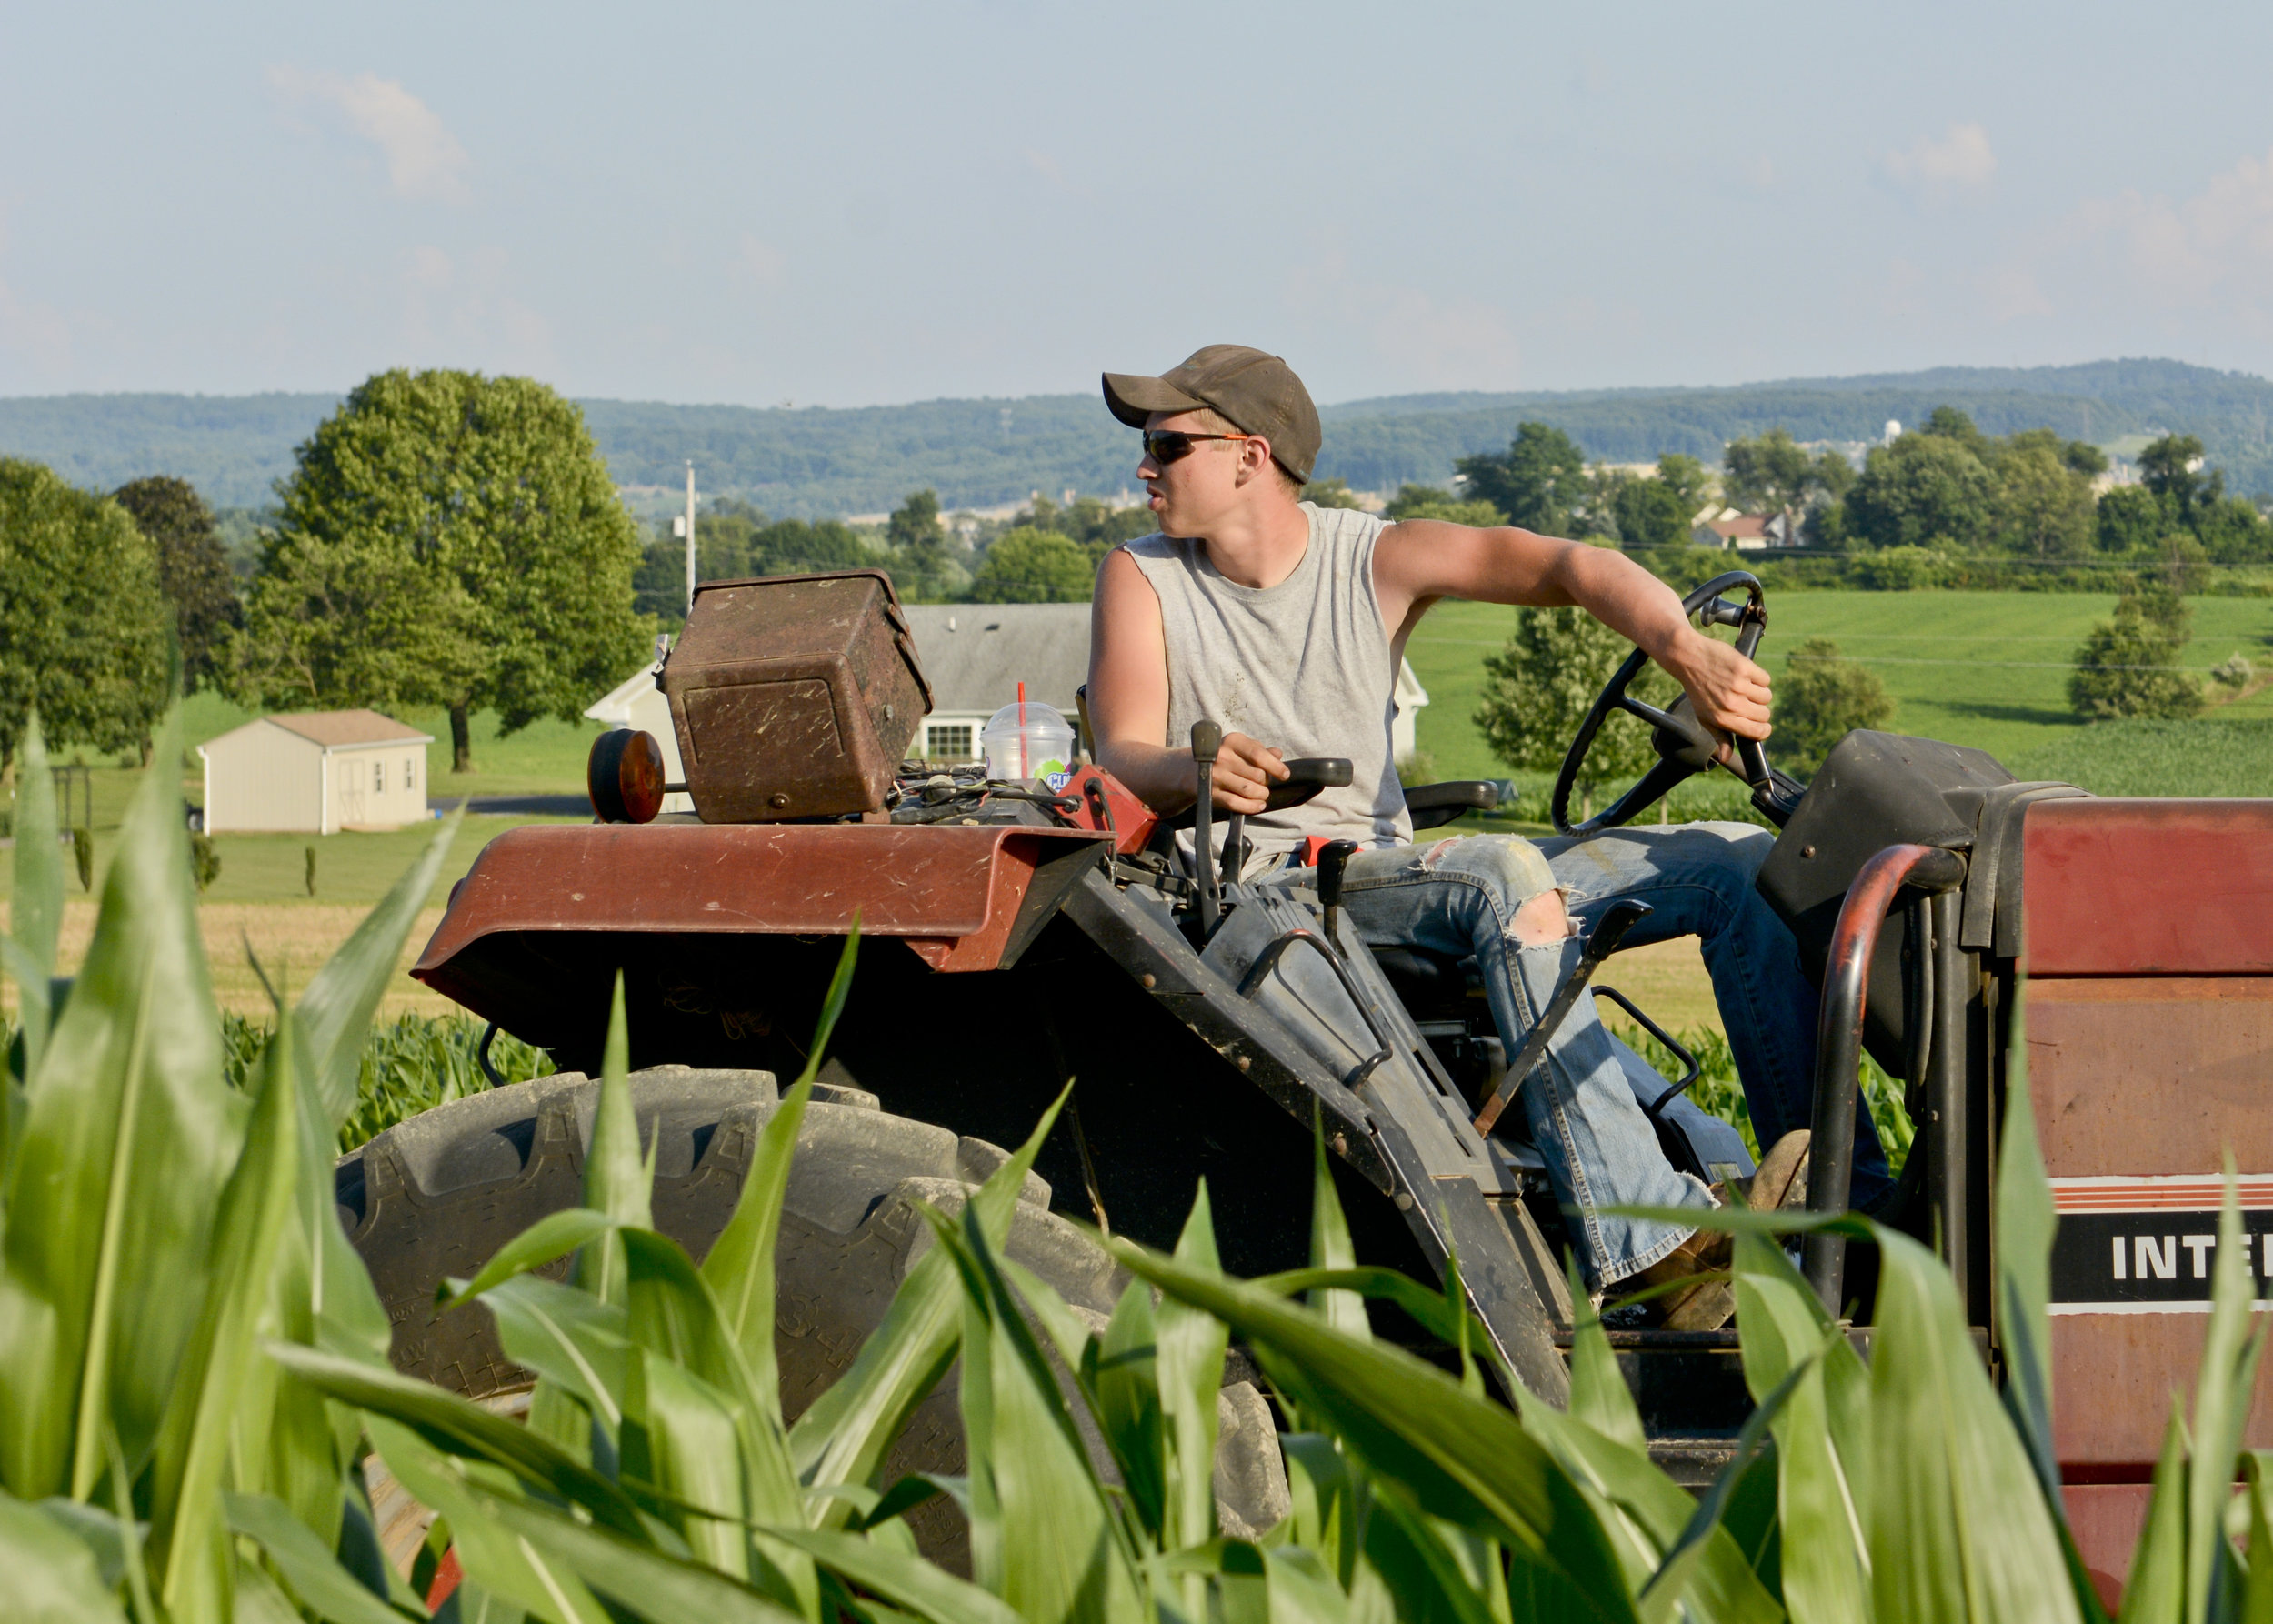 Samuel Angstadt, 19, went to work on his parents' farm in Richmond Township after graduating from Fleetwood High School. He never seriously considered anything else, he says.